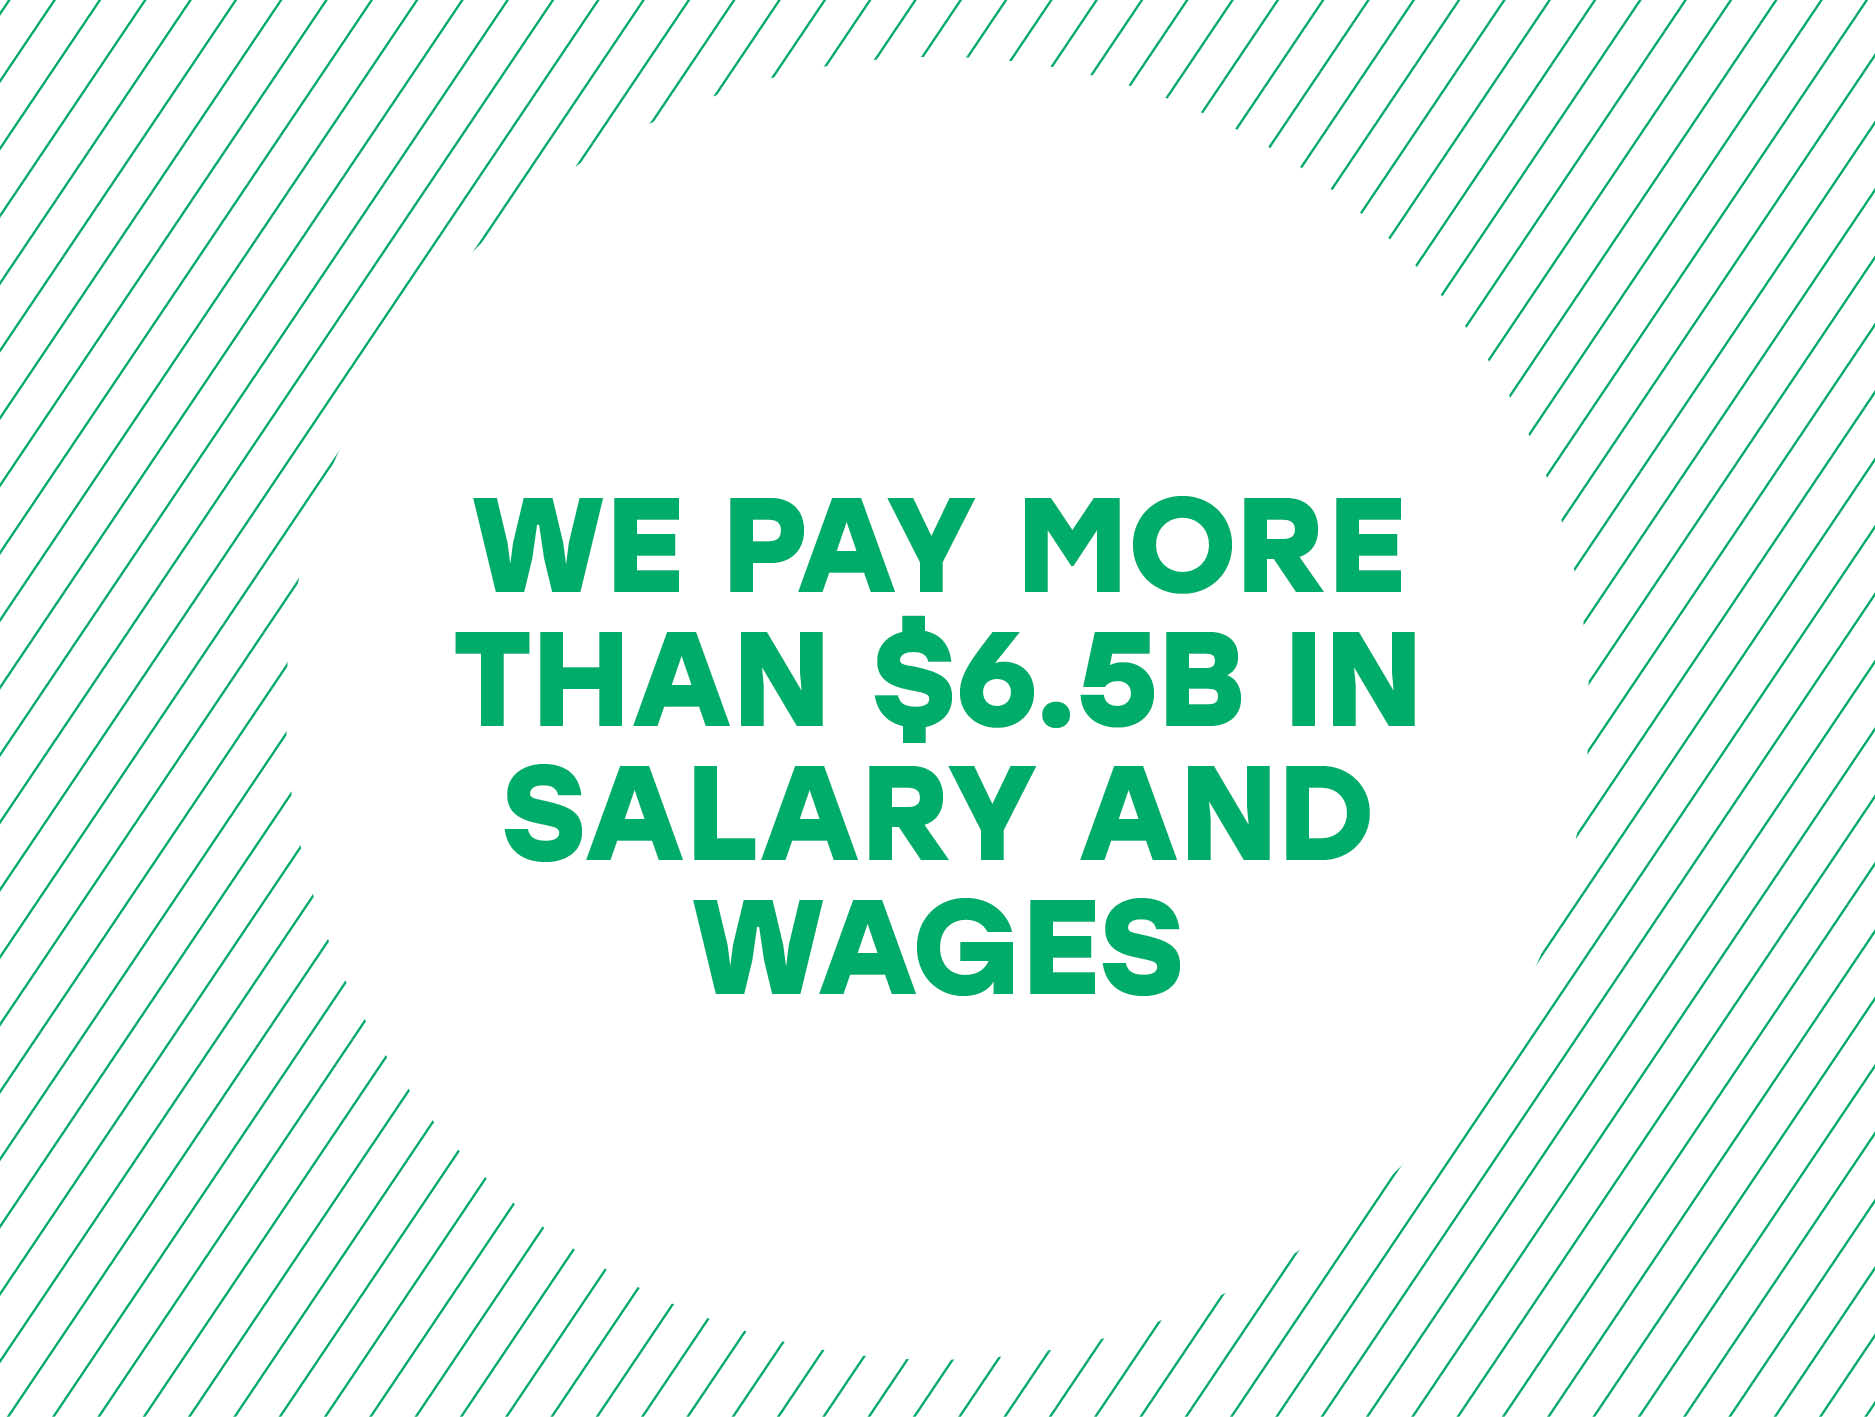 We pay more than 6.5 billion dollars in salary and wages